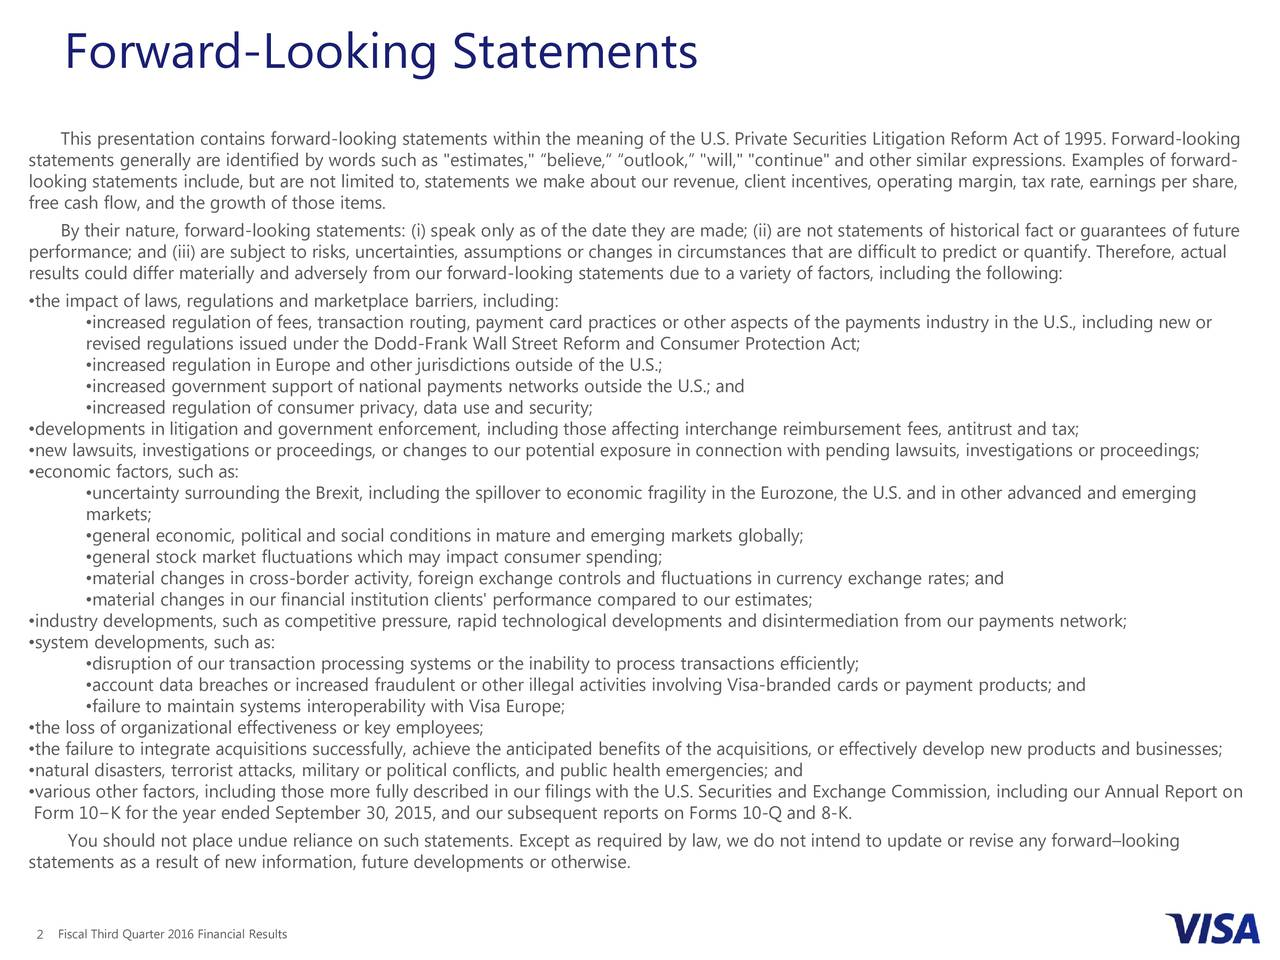 "This presentation contains forward-looking statements within the meaning of the U.S. Private Securities Litigation Reform Act of 1995. Forward-looking statements generally are identified by words such as ""estimates,"" believe, outlook, ""will,"" ""continue"" and other similar expressions. Examples of forward- looking statements include, but are not limited to, statements we make about our revenue, client incentives, operating margin, tax rate, earnings per share, free cash flow, and the growth of those items. By their nature, forward-looking statements: (i) speak only as of the date they are made; (ii) are not statements of historical fact or guarantees of future performance; and (iii) are subject to risks, uncertainties, assumptions or changes in circumstances that are difficult to predict or quantify. Therefore, actual results could differ materially and adversely from our forward -looking statements due to a variety of factors, including the following: the impact of laws, regulations and marketplace barriers, including: increased regulation of fees, transaction routing, payment card practices or other aspects of the payments industry in the U.S., including new or revised regulations issued under the Dodd-Frank Wall Street Reform and Consumer Protection Act; increased regulation in Europe and other jurisdictions outside of the U.S.; increased government support of national payments networks outside the U.S.; and increased regulation of consumer privacy, data use and security; developments in litigation and government enforcement, including those affecting interchange reimbursement fees, antitrust and t ax; new lawsuits, investigations or proceedings, or changes to our potential exposure in connection with pending lawsuits, investigations or proceedings; economic factors, such as: uncertainty surrounding the Brexit, including the spillover to economic fragility in the Eurozone, the U.S. and in other advanced and emerging markets; general economic, political and social conditions in mature and emerging markets globally; general stock market fluctuations which may impact consumer spending; material changes in cross-border activity, foreign exchange controls and fluctuations in currency exchange rates; and material changes in our financial institution clients' performance compared to our estimates; industry developments, such as competitive pressure, rapid technological developments and disintermediation from our payments network; system developments, such as: disruption of our transaction processing systems or the inability to process transactions efficiently; account data breaches or increased fraudulent or other illegal activities involving Visa-branded cards or payment products ; and failure to maintain systems interoperability with Visa Europe; the loss of organizational effectiveness or key employees; the failure to integrate acquisitions successfully, achieve the anticipated benefits of the acquisitions, or effectively develop new products and businesses; natural disasters, terrorist attacks, military or political conflicts, and public health emergencies; and various other factors, including those more fully described in our filings with the U.S. Securities and Exchange Commission, including our Annual Report on Form 10K for the year ended September 30, 2015, and our subsequent reports on Forms 10-Q and 8-K. You should not place undue reliance on such statements. Except as required by law, we do not intend to update or revise any forwardlooking statements as a result of new information, future developments or otherwise. 2 Fiscal Third Quarter 2016 Financial Results"